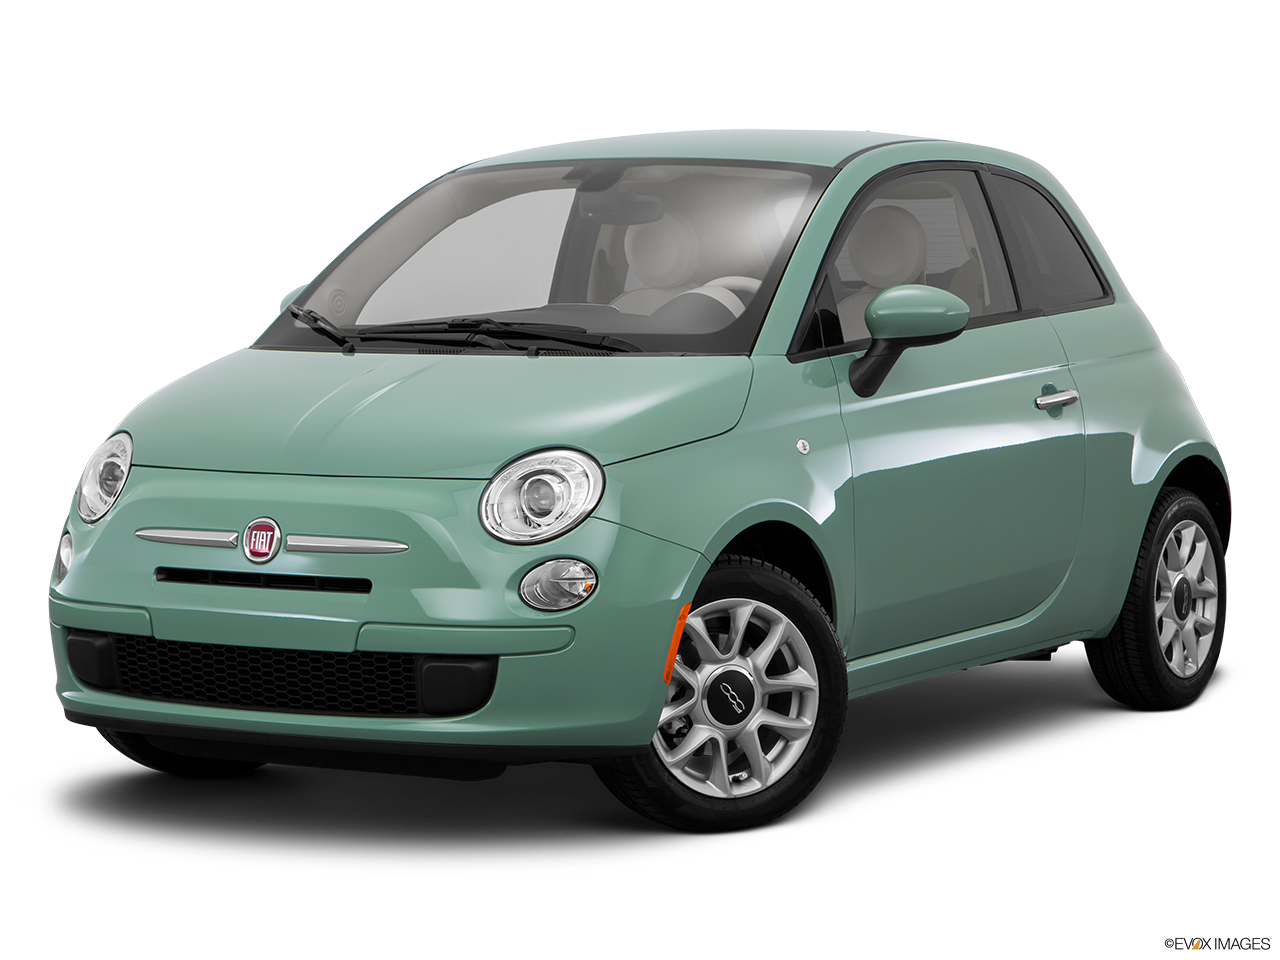 Test Drive A 2016 Fiat 500 at Arrigo FIAT West Palm Beach in West Palm Beach